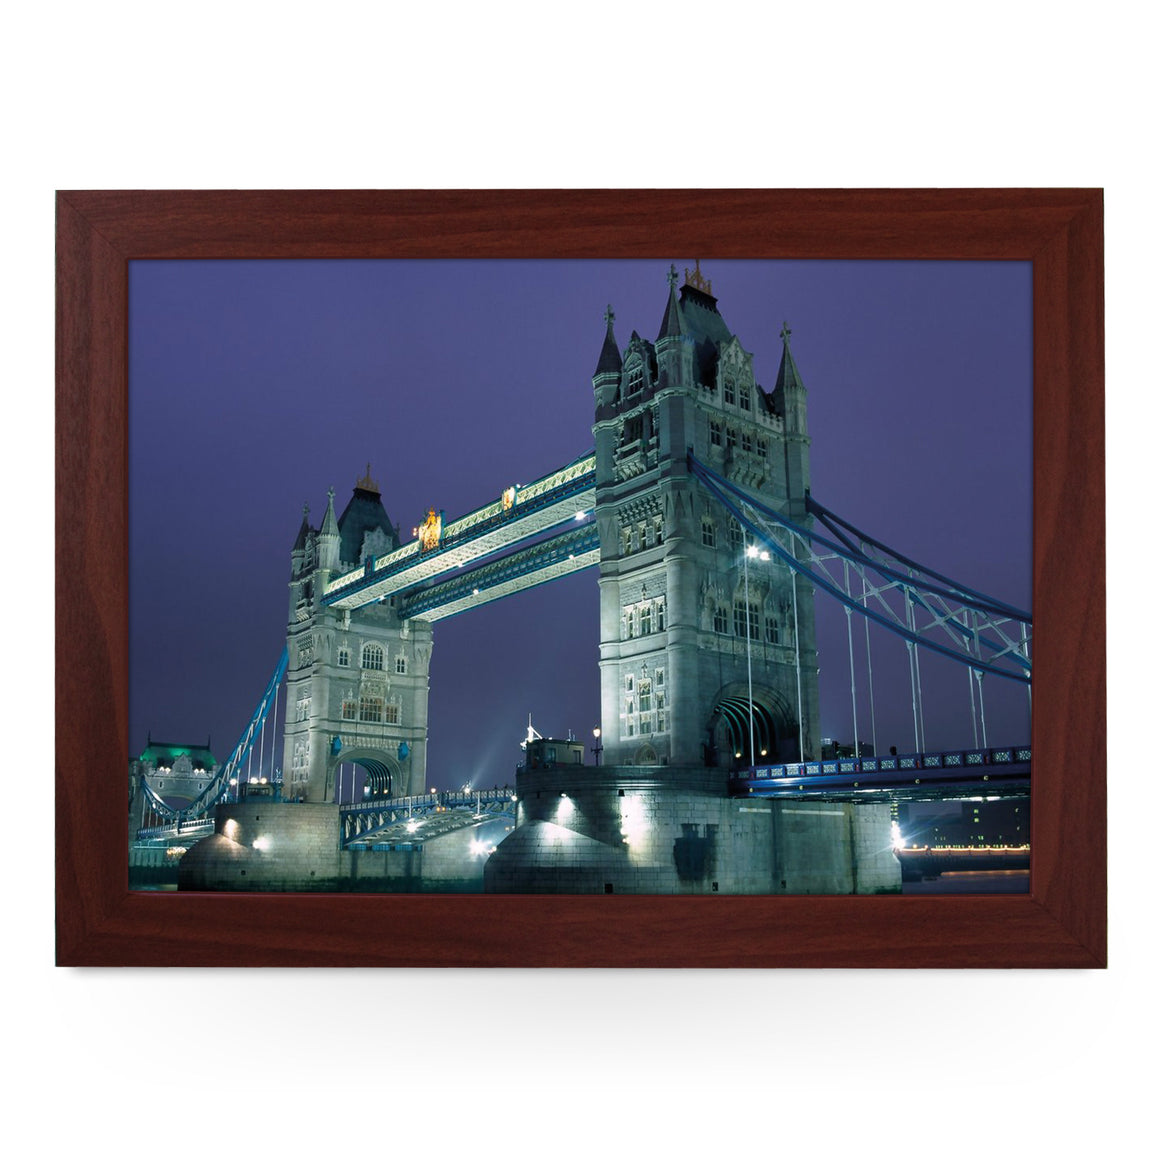 London Tower Bridge at Night Lap Tray - L0391